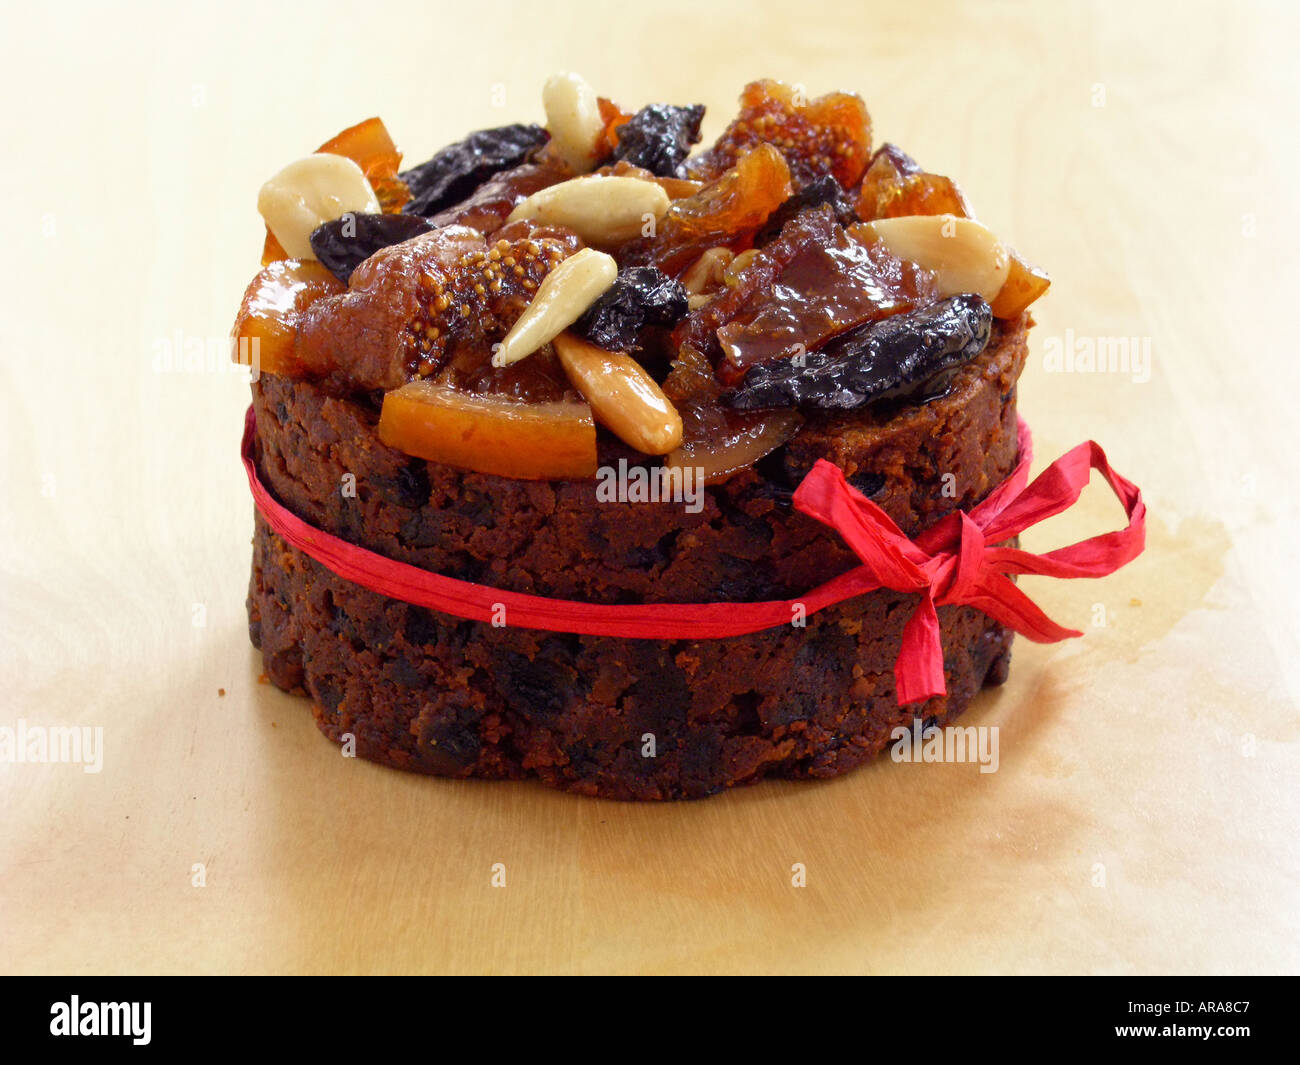 Christmas Cake Decoration Nuts : Fruit cake with glazed topping of nuts and dried fruit ...